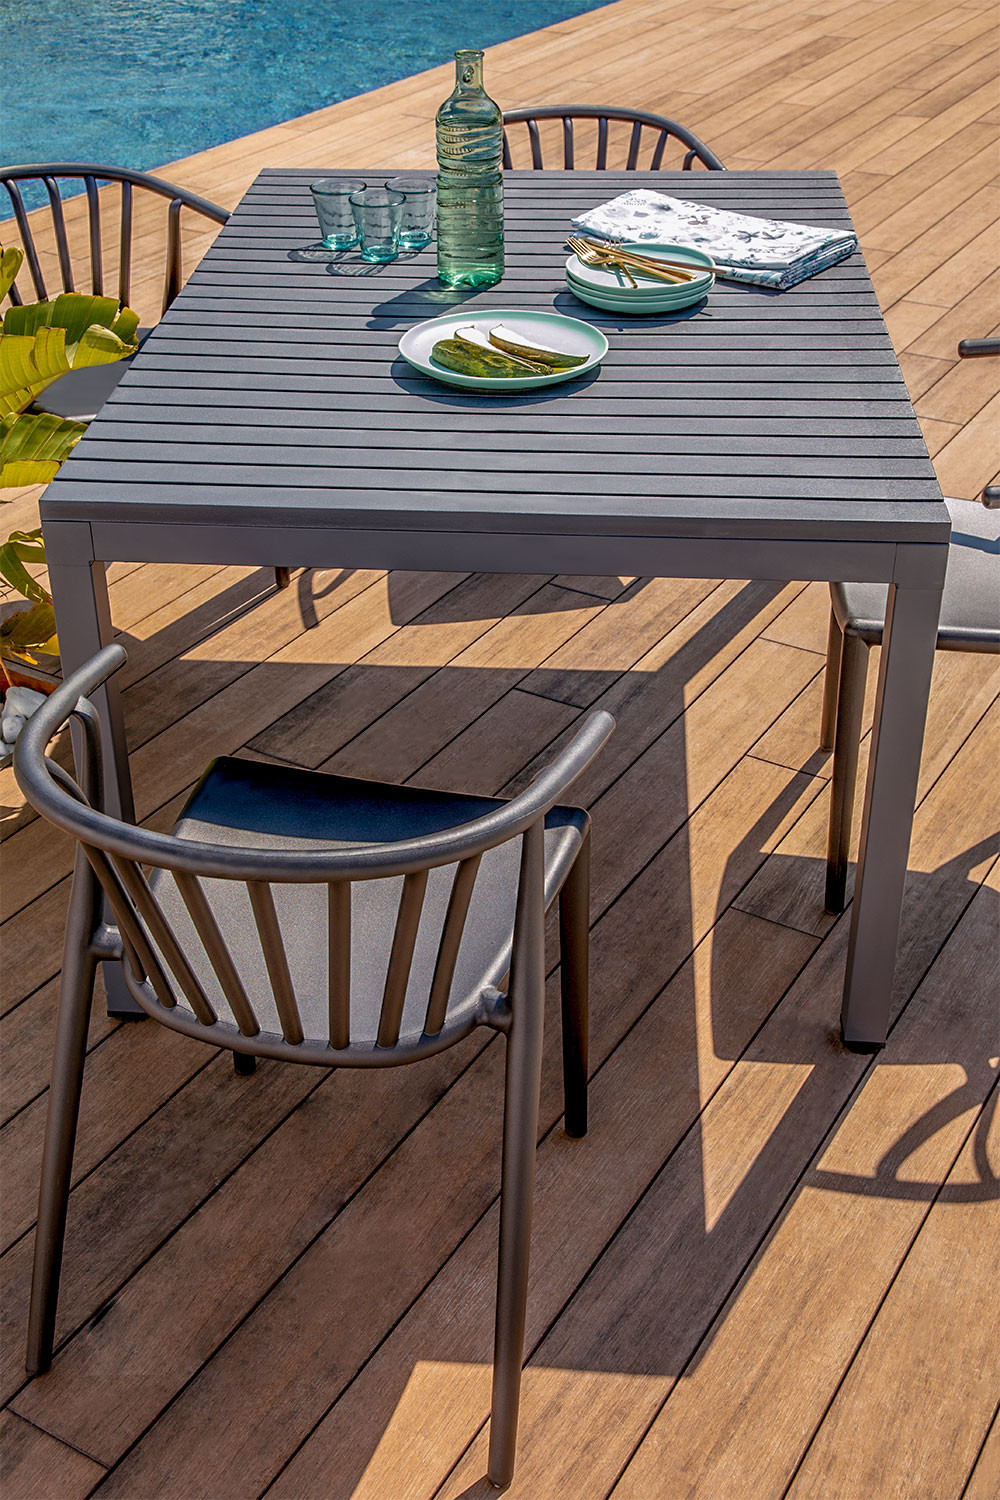 Aluminum Table Set (140x100 cm) Marti and 4 Ivor Garden Chairs, gallery image 1